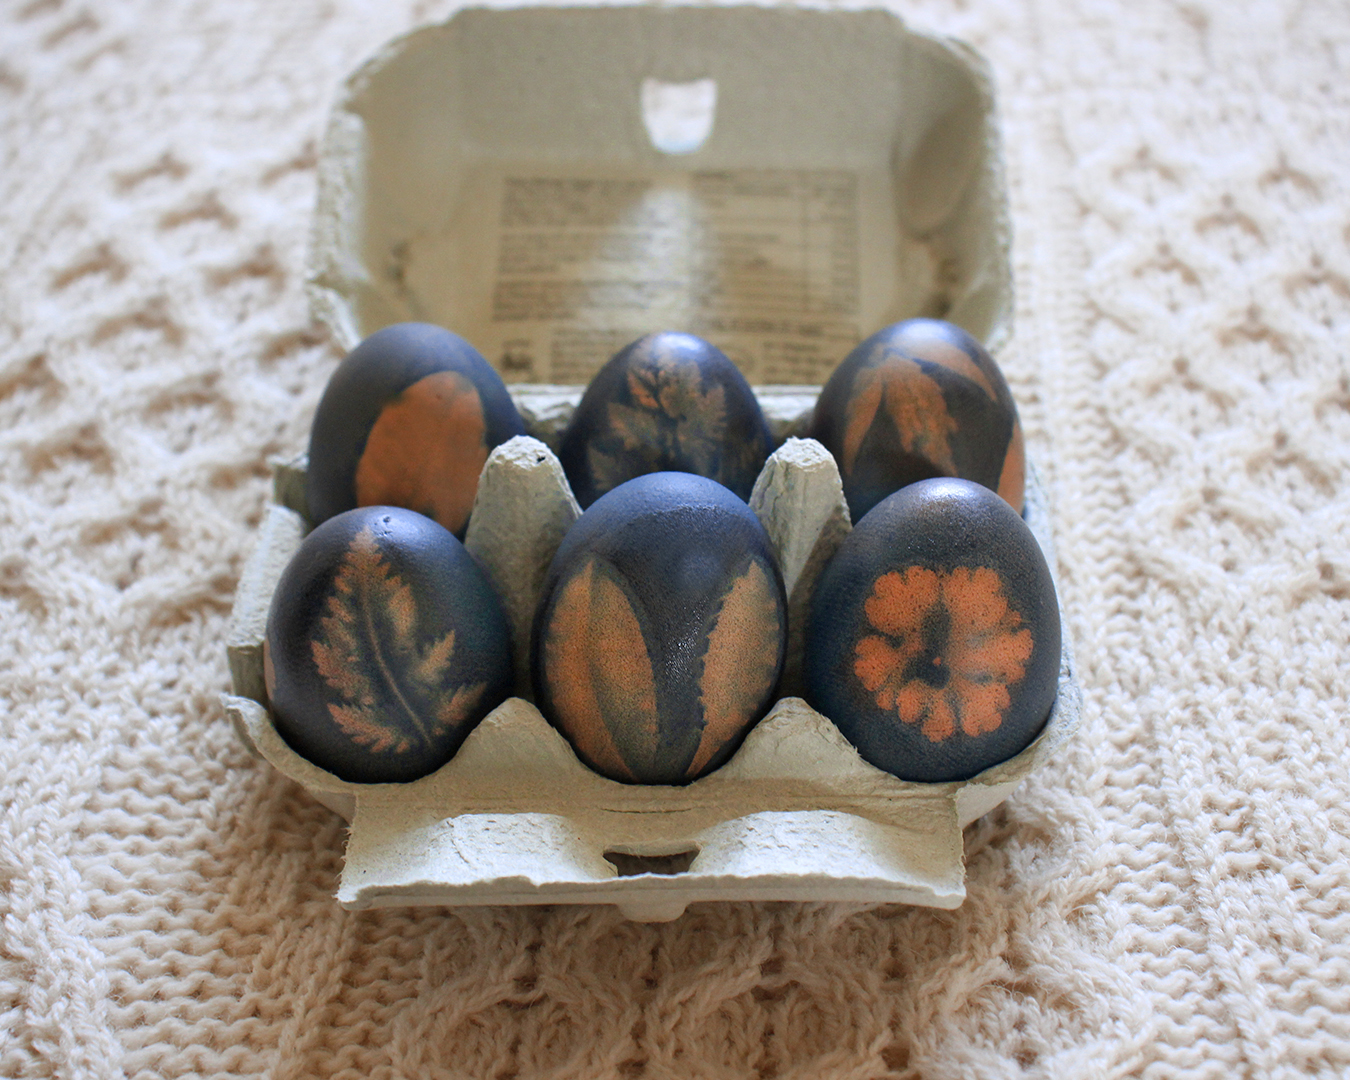 red-cabbage-natural-dye-eggs-easter-project-nancy-straughan-blog.jpg